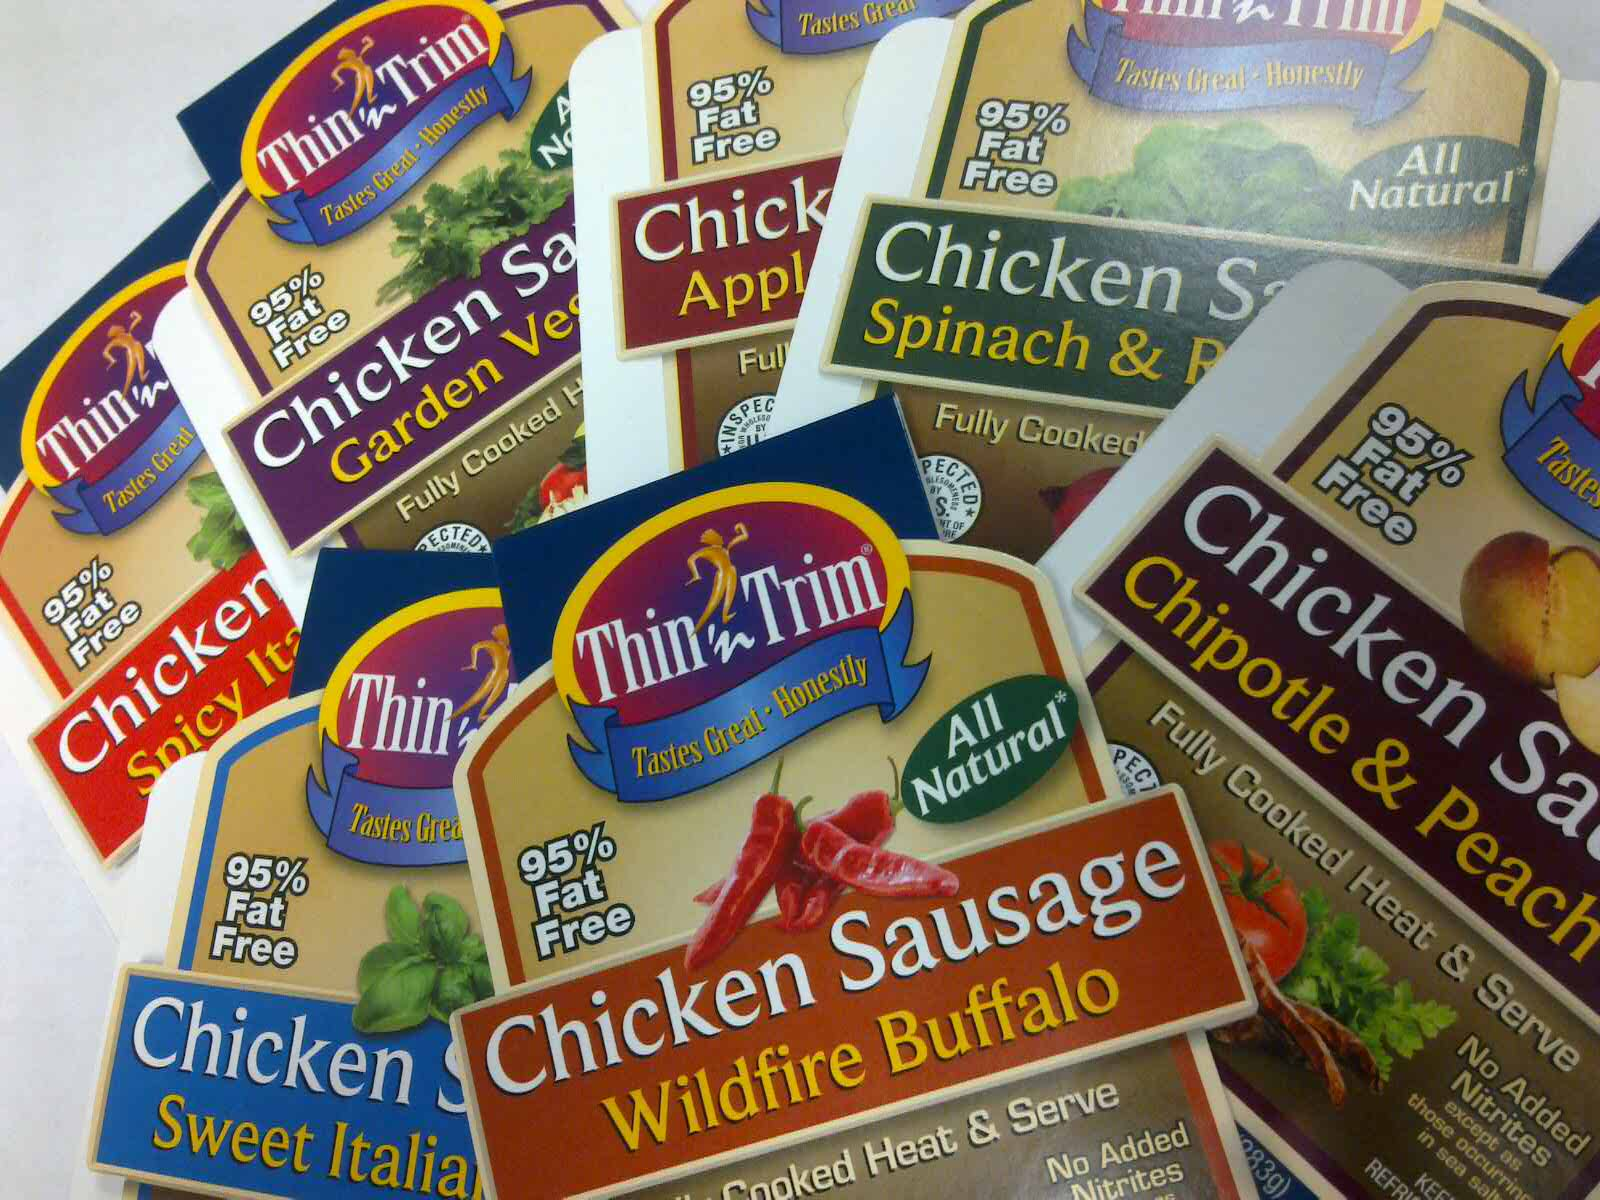 Thin 'n Trim Chicken Sausage Bands